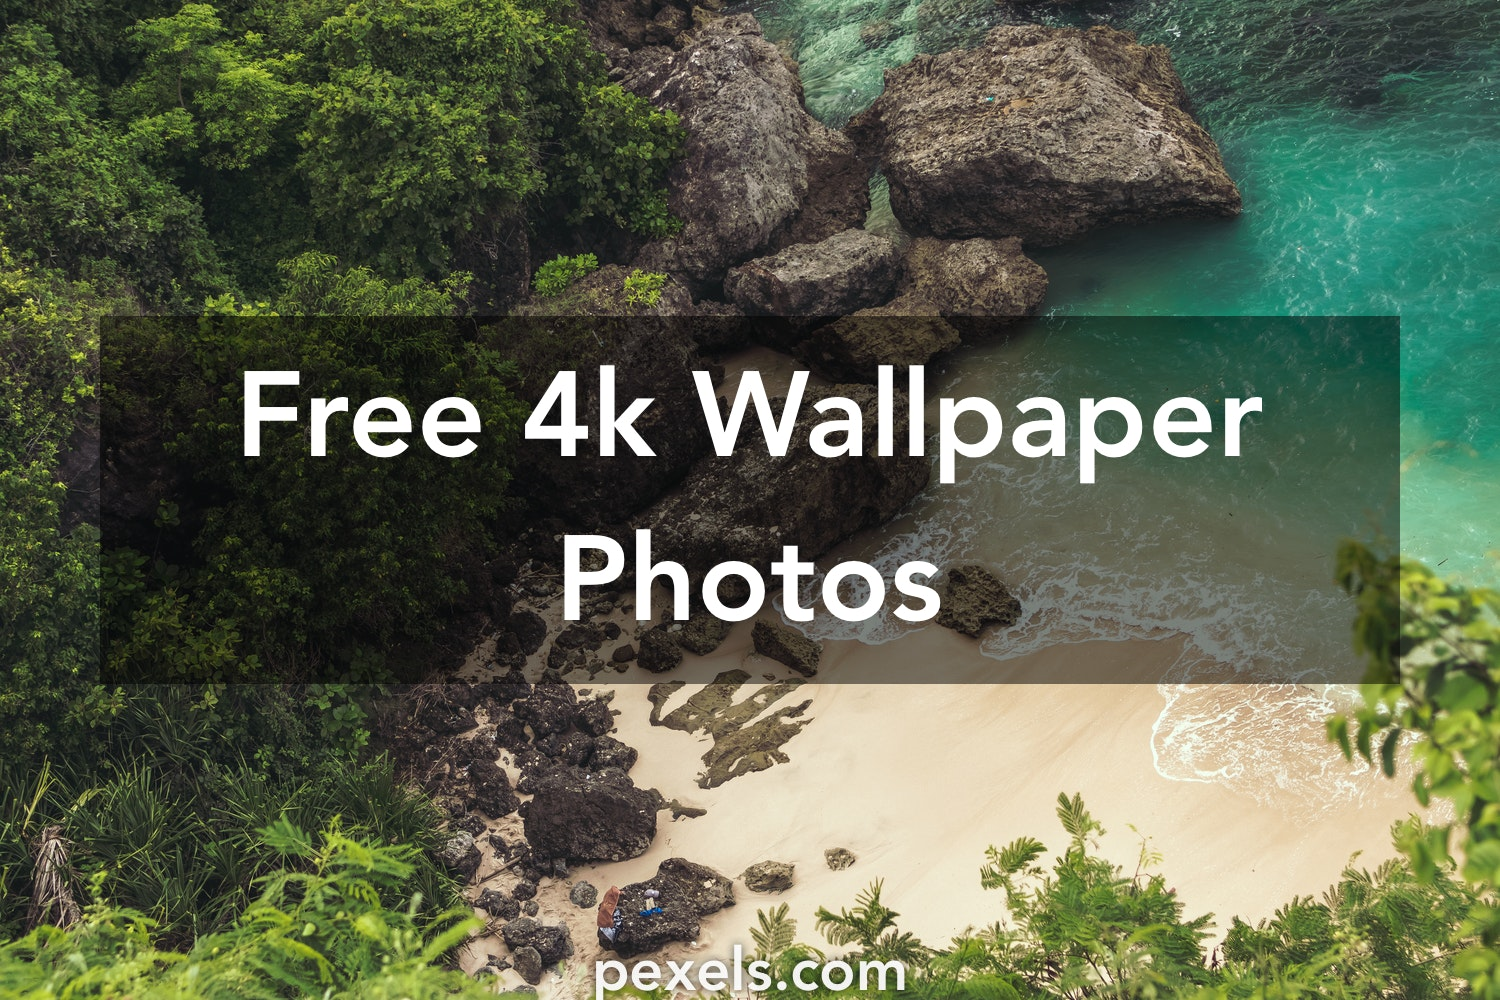 4k Wallpapers Pexels Free Stock Photos